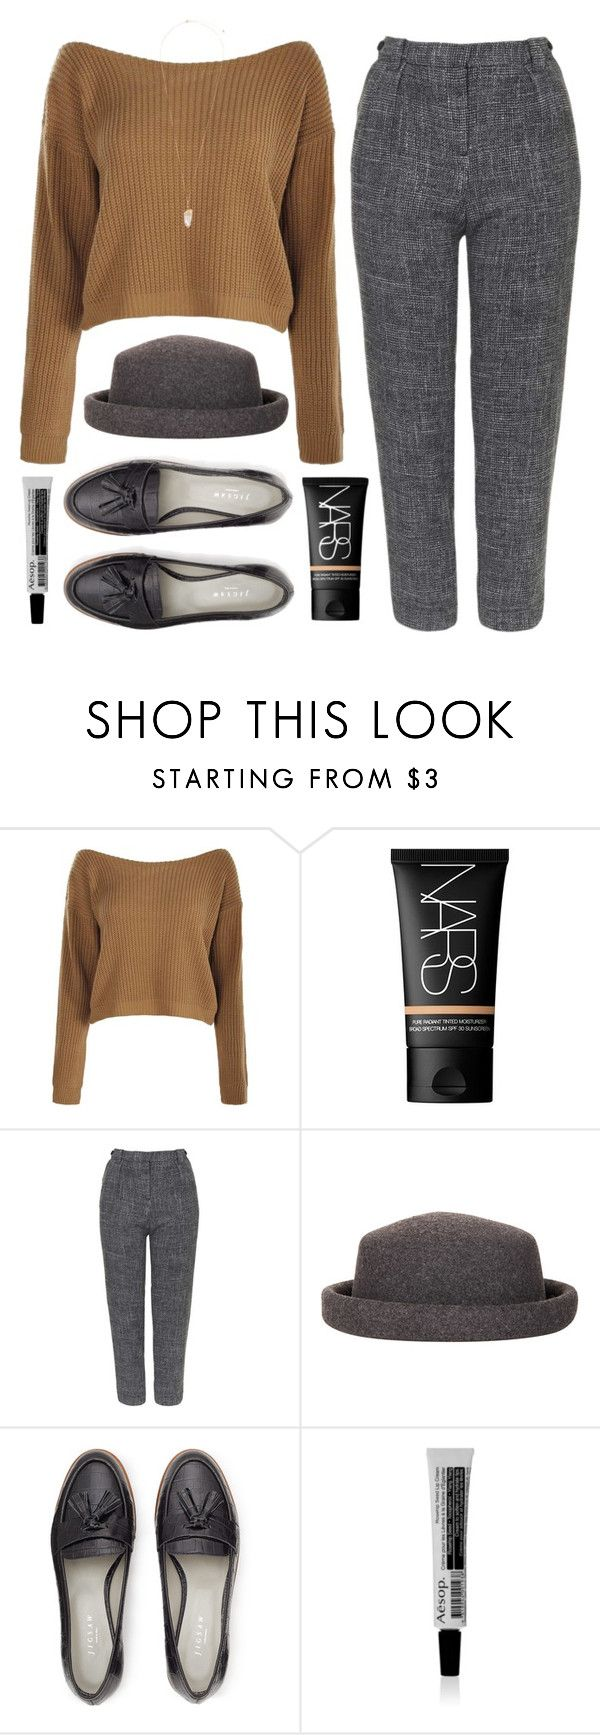 """""""Saoirse"""" by soym ❤ liked on Polyvore featuring NARS Cosmetics, Topshop, Jigsaw, Aesop and Eloquii"""